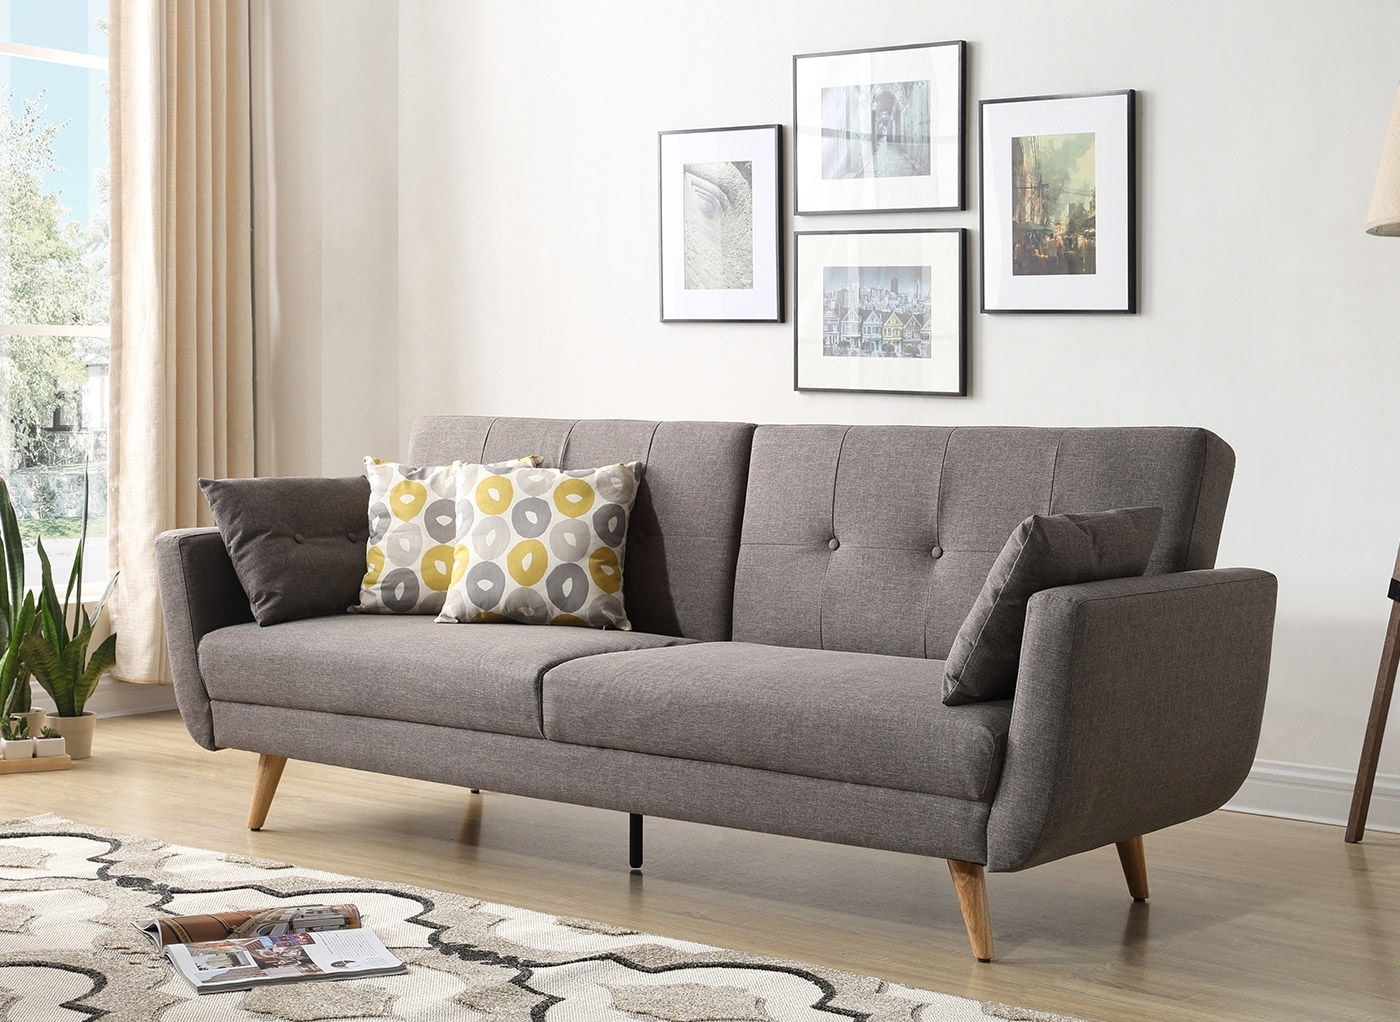 Most Popular Mid Range Sofas For Mid Range Sofas Uk – Hereo Sofa (View 8 of 20)